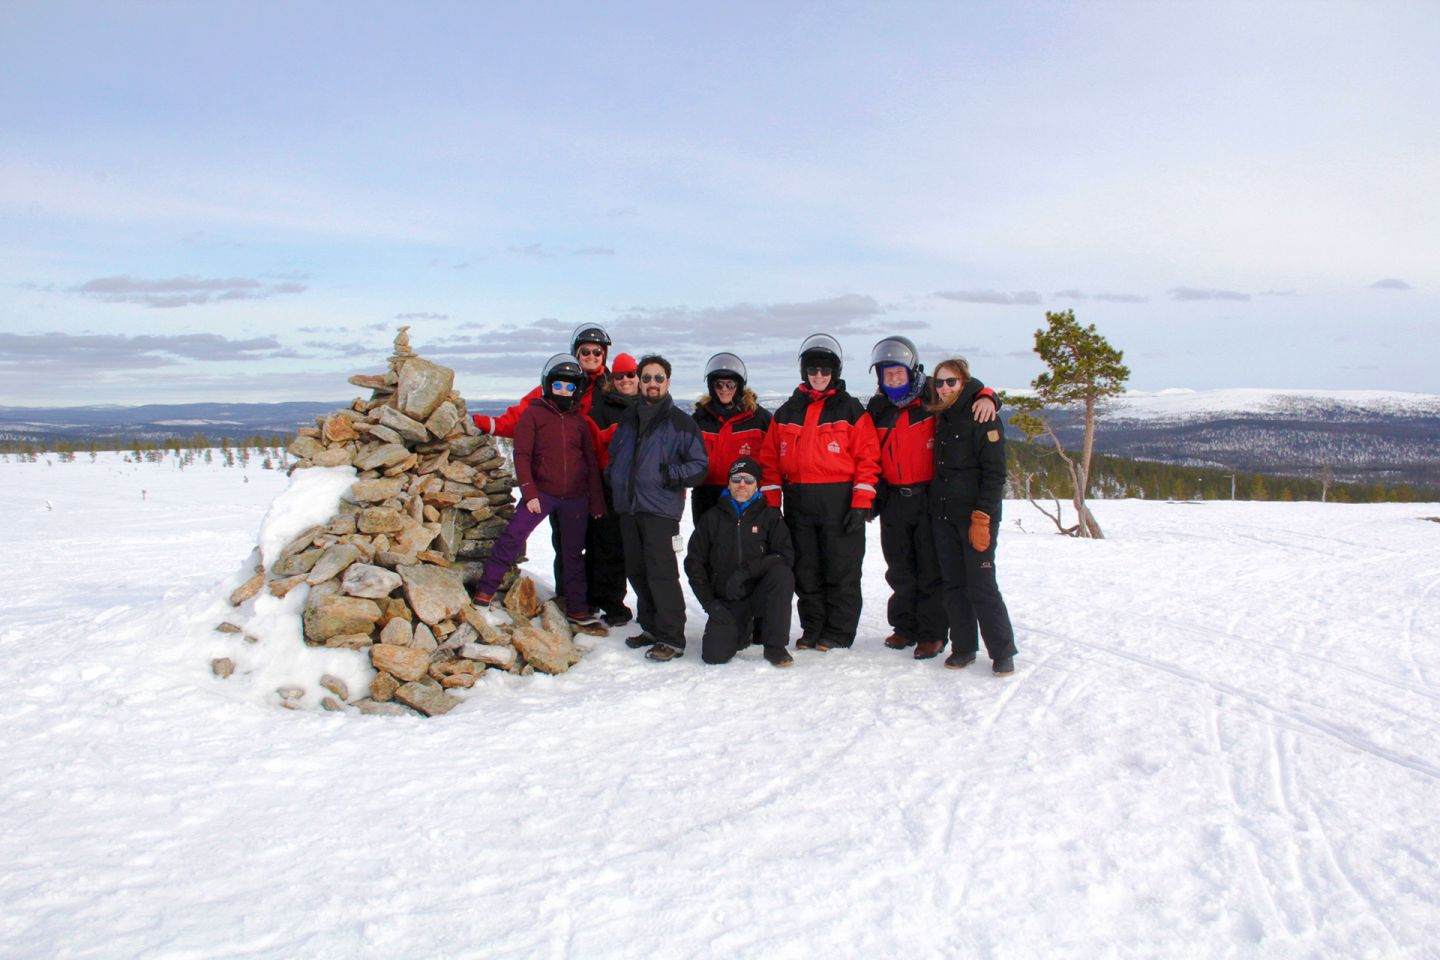 The tour stops for a photo, during Film Lapland Fam Tour 2018